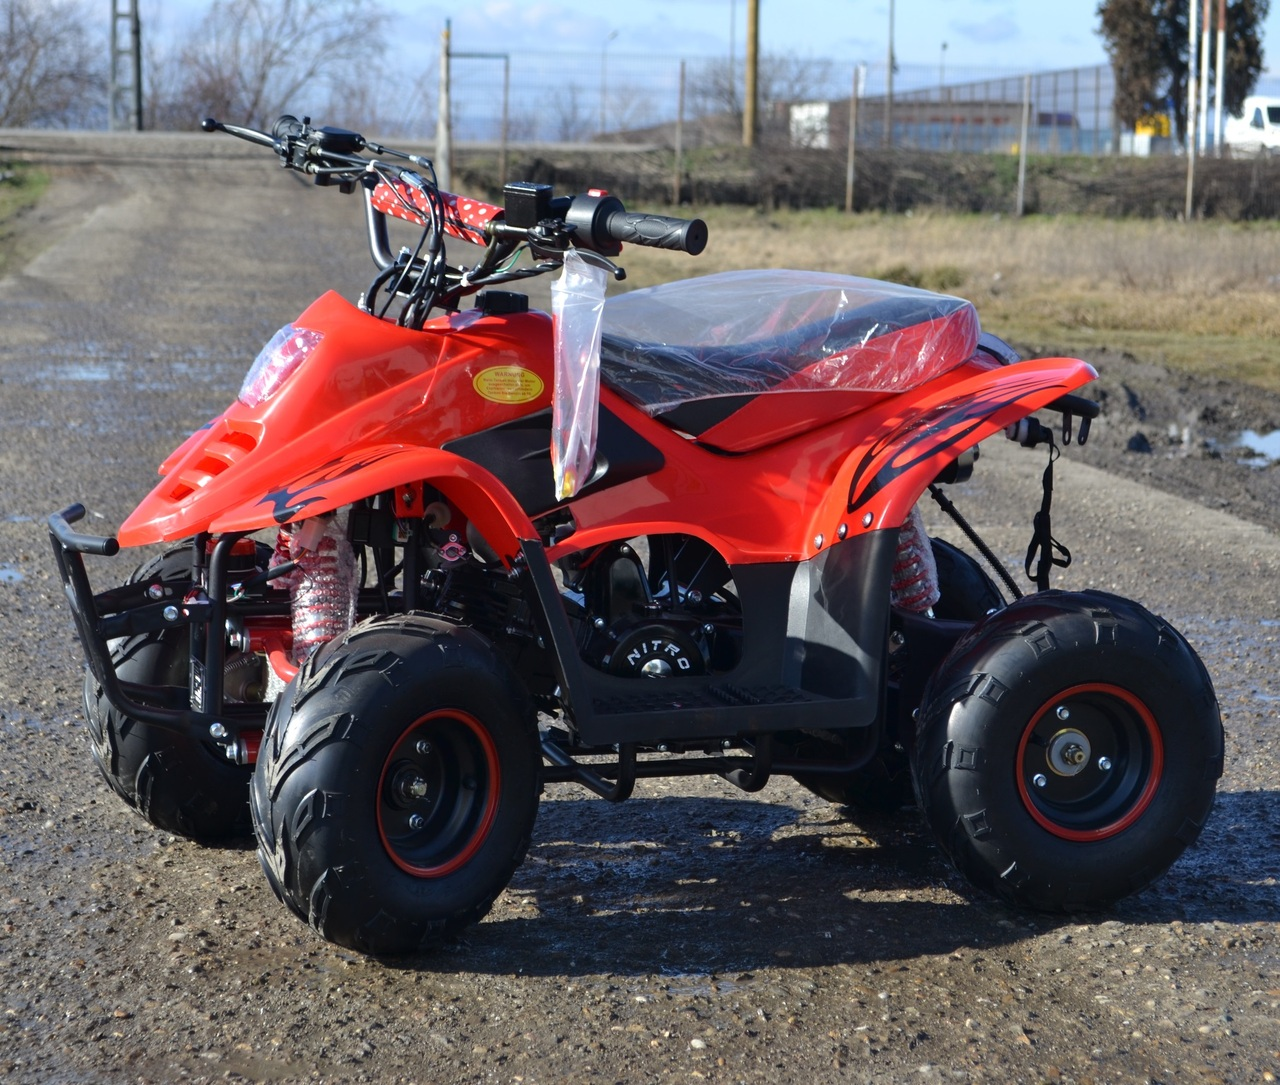 Model: ATV Panzer 125 CC